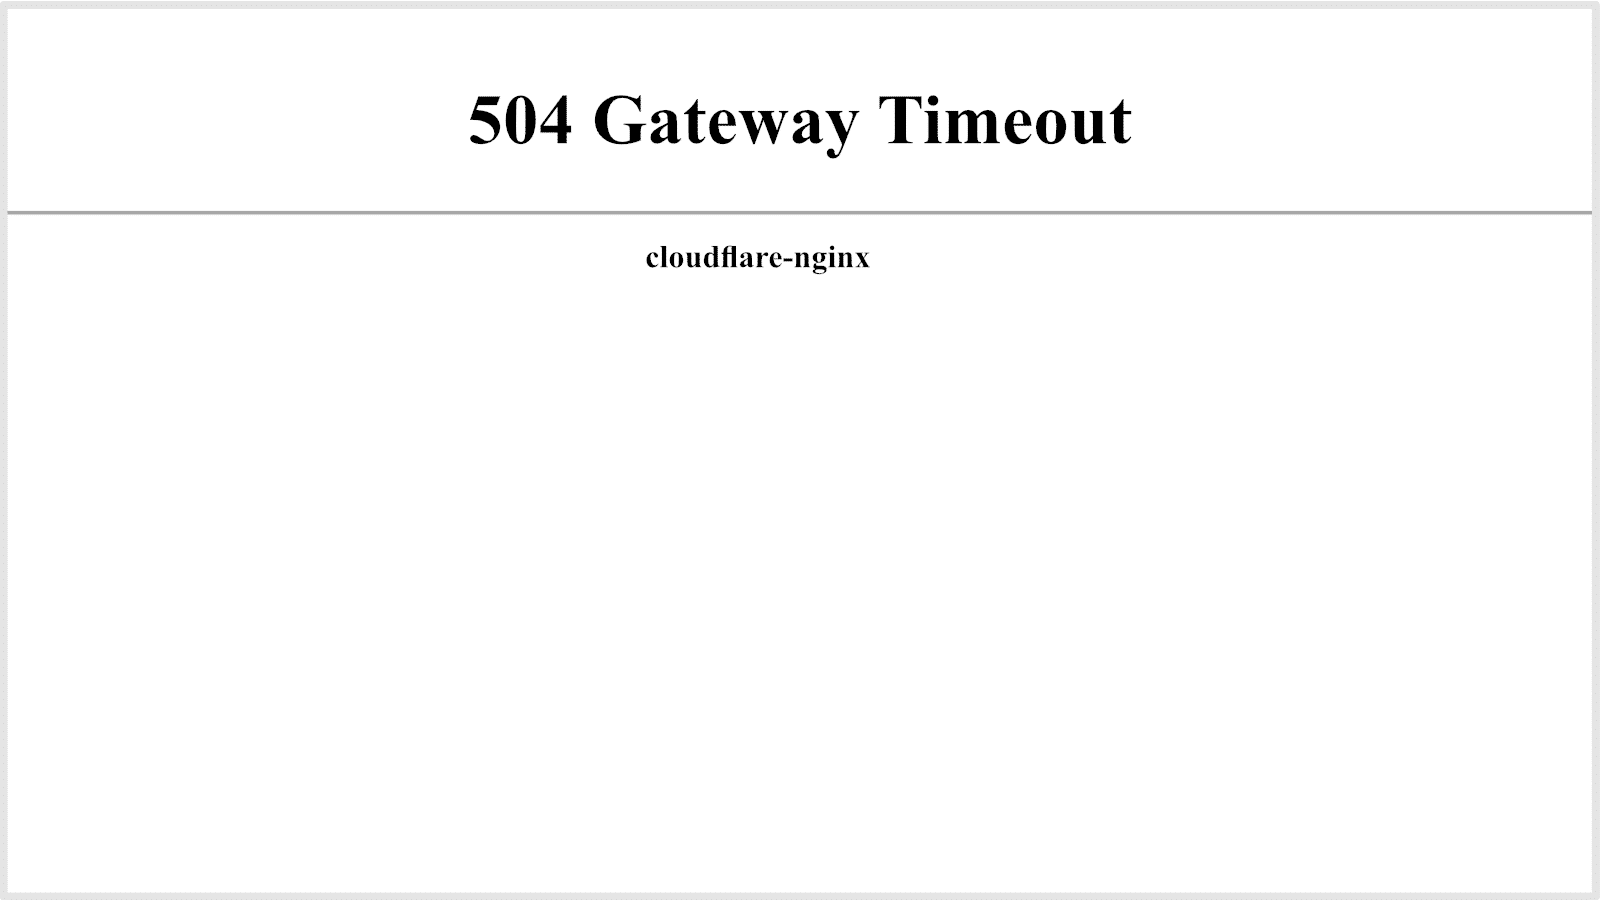 Cloudflare '504 Gateway Timeout'-fout